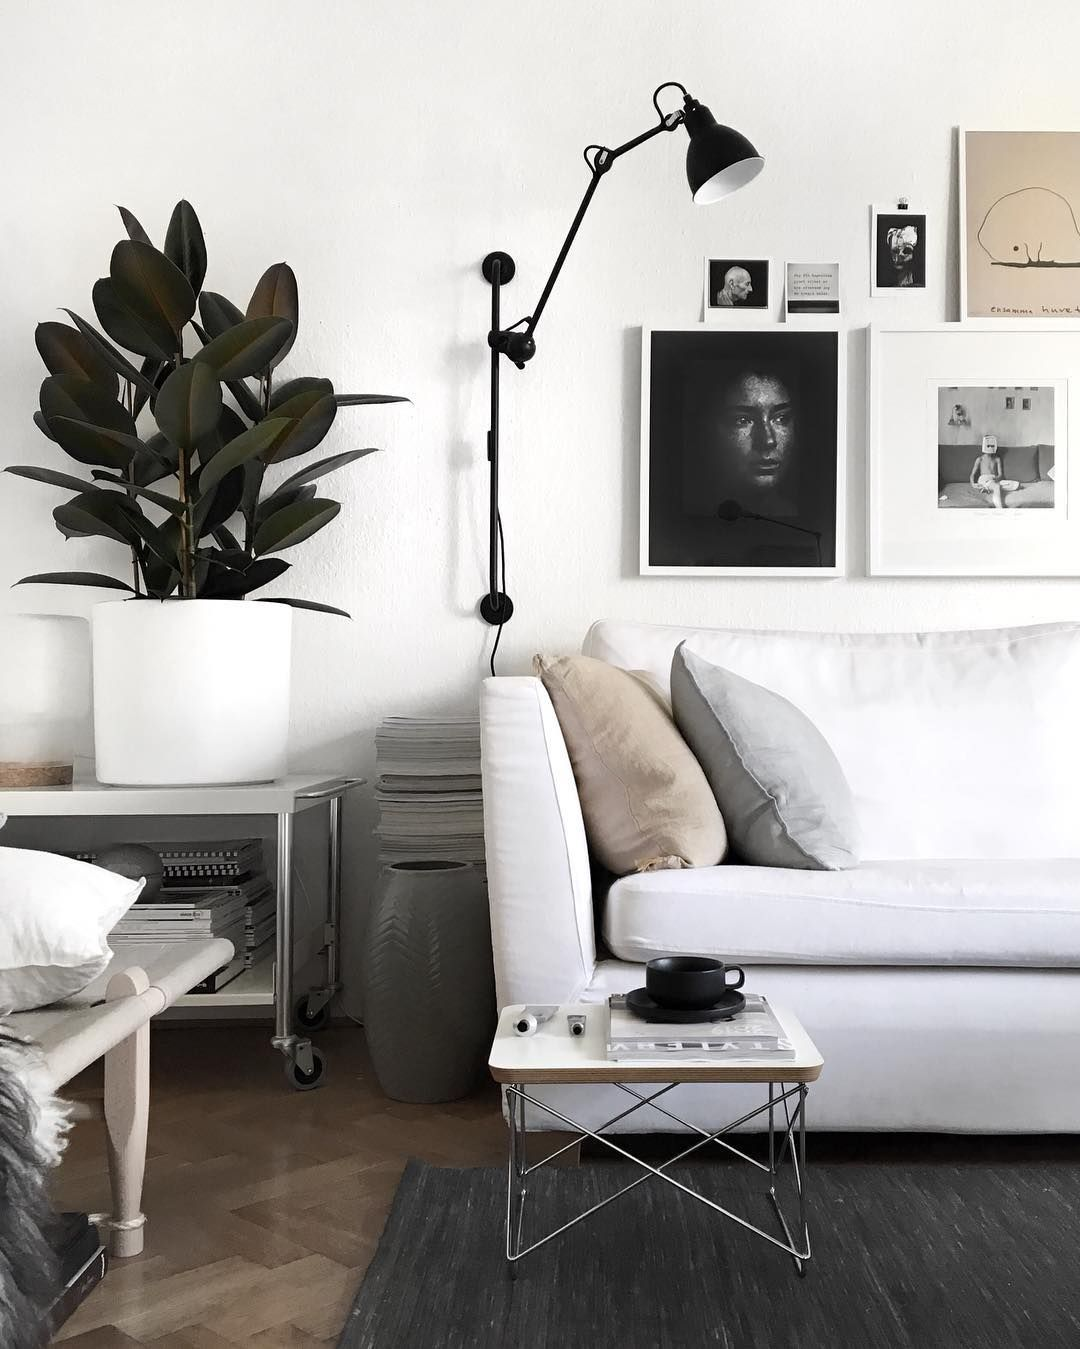 Small Apartment Bedroom West Elm Bedroom Ideas Bedroom Design Houzz Lighting Ideas For Bedroom: Via @49kvadrat On Instagram